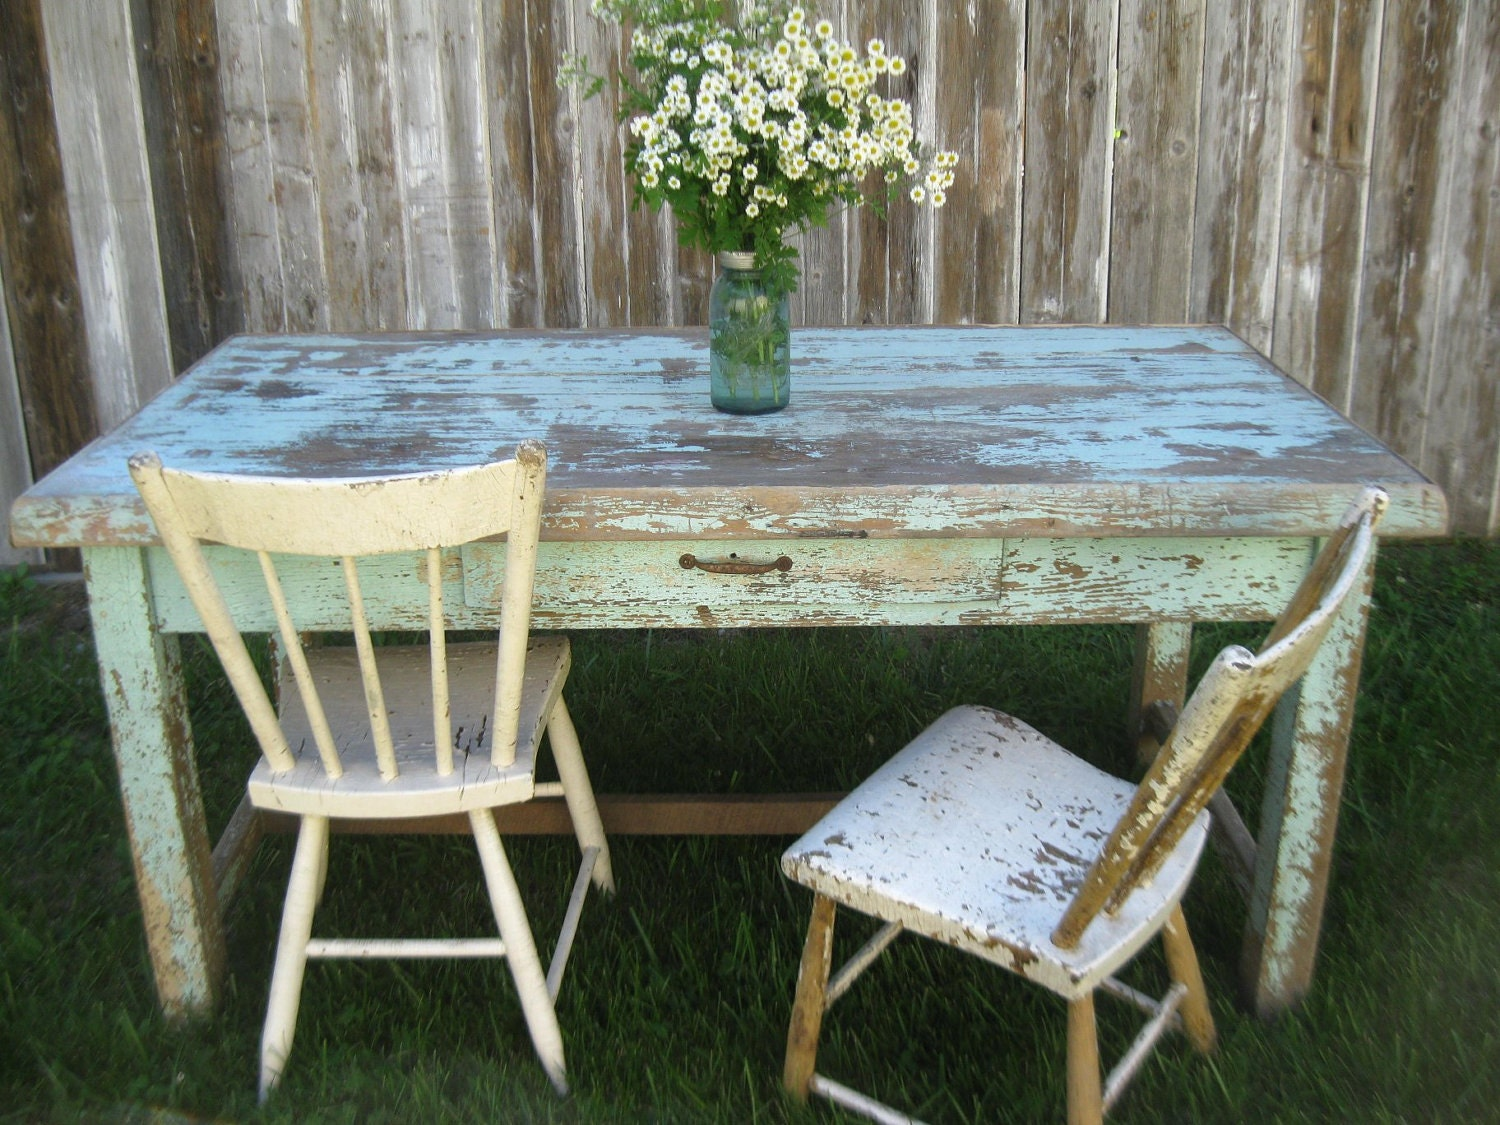 Primitive farmhouse work table with chippy old robin egg blue paint - littleshop86